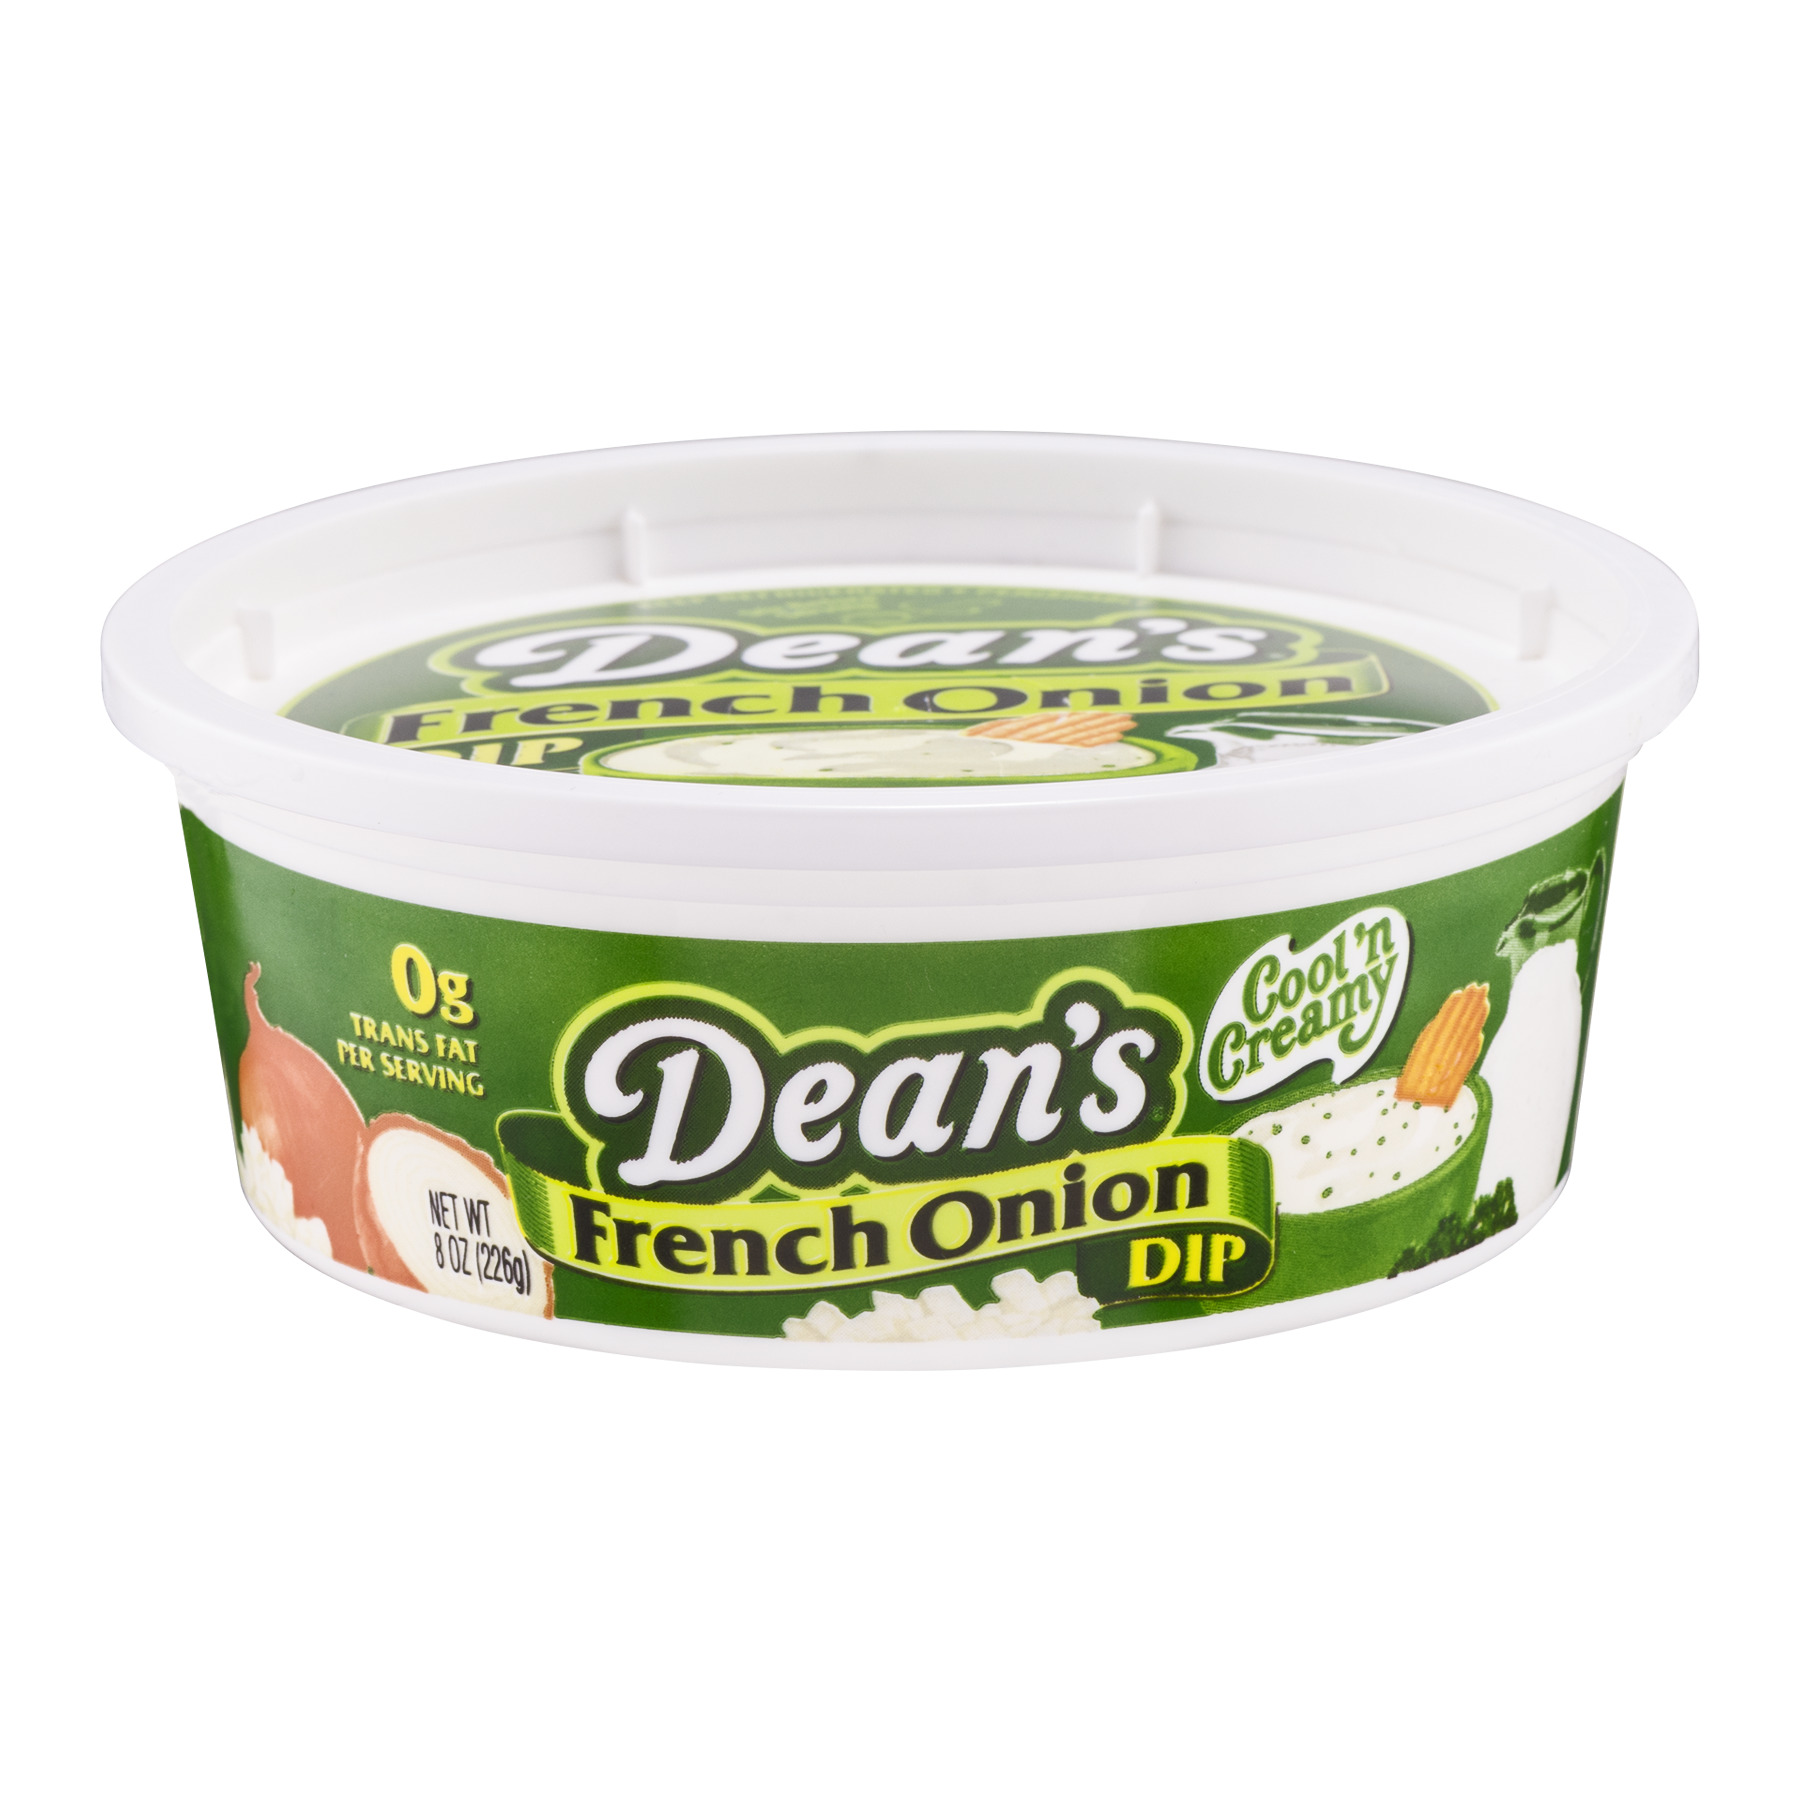 Dean's® French Onion Dip 8 oz. Tub